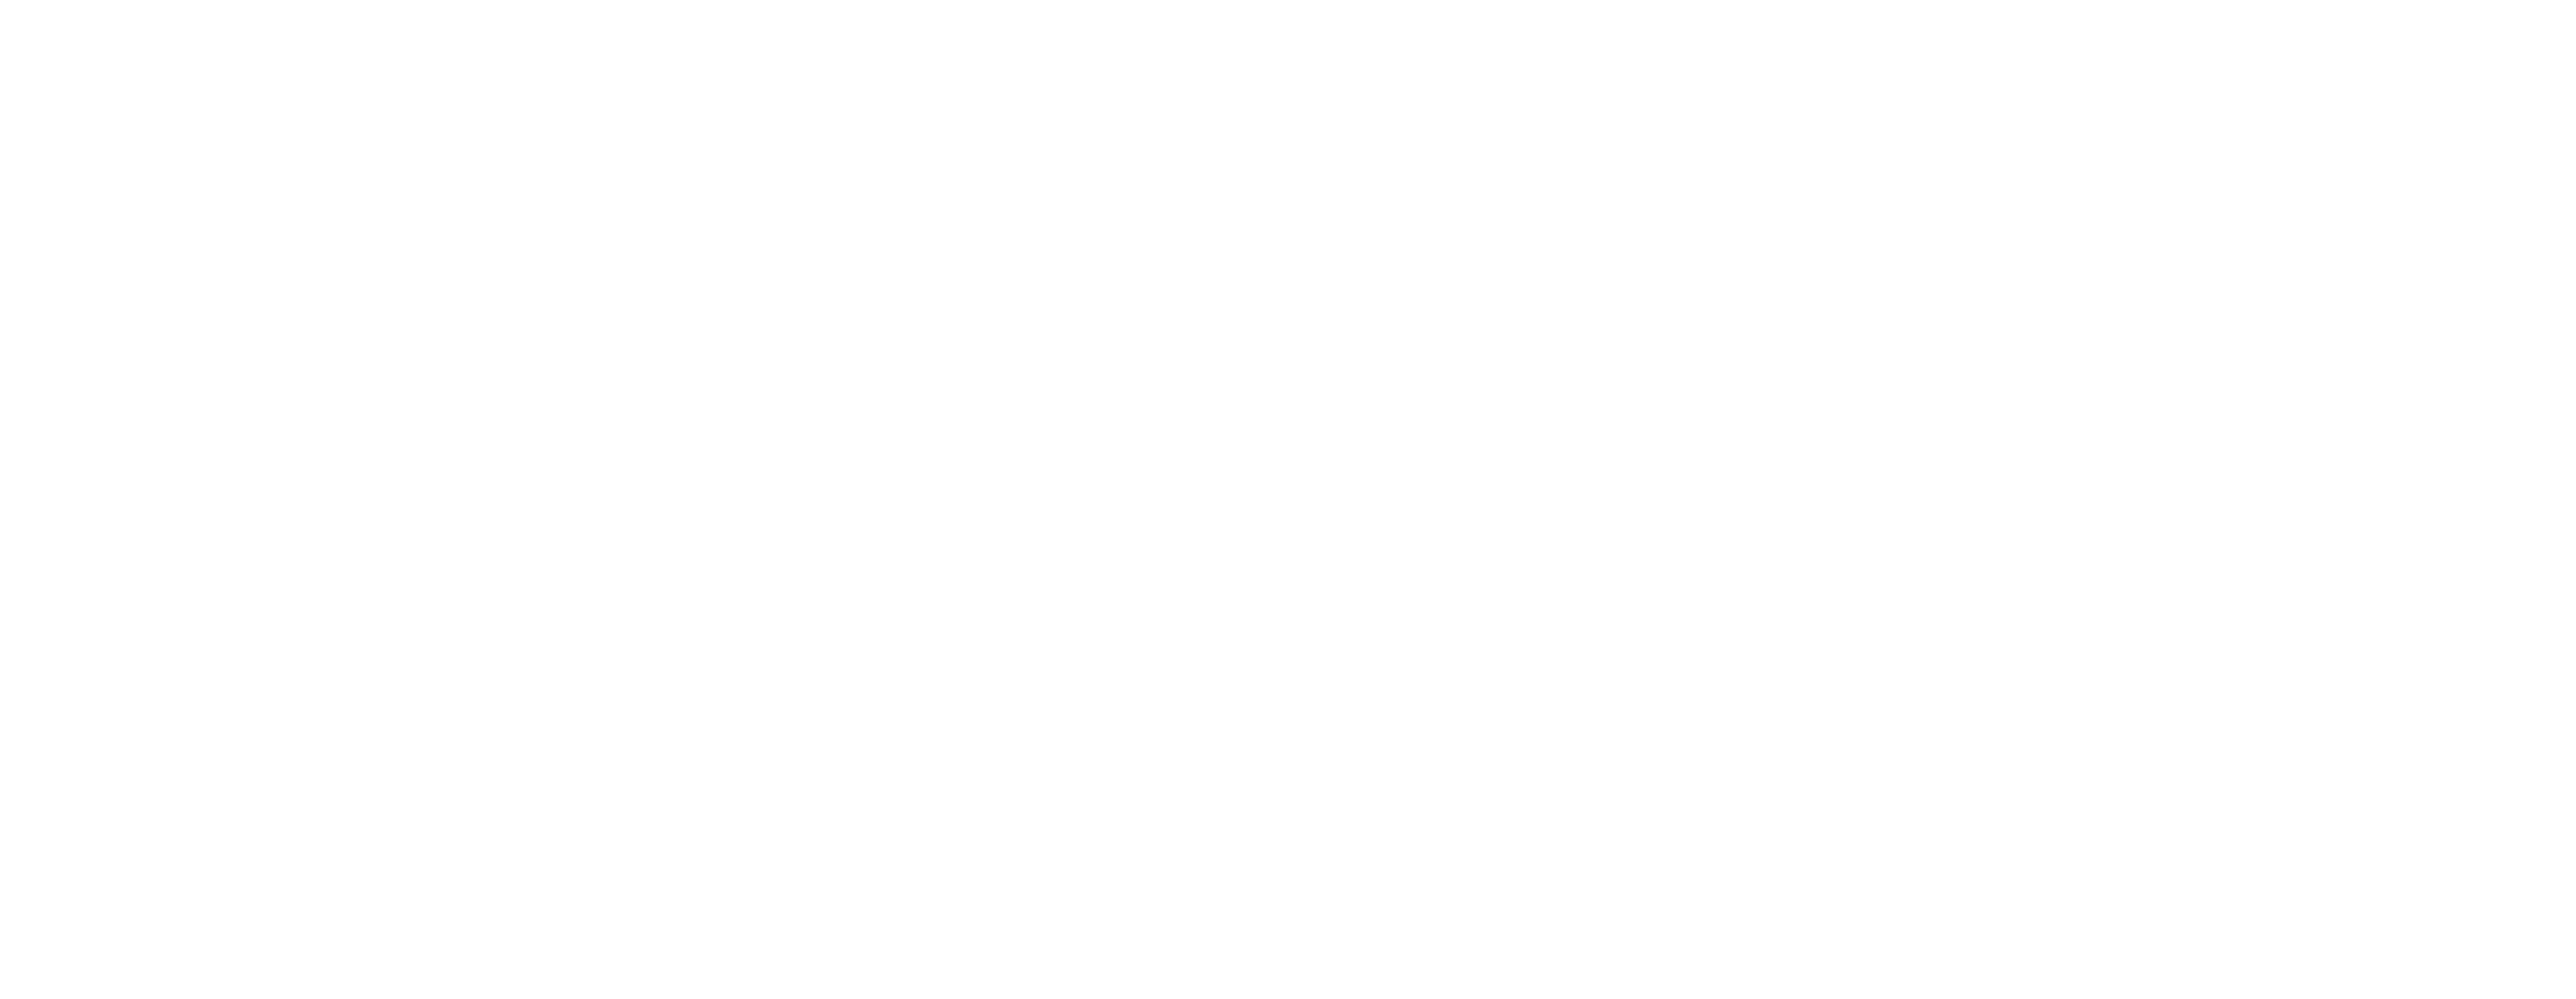 H4 Architects + Engineers